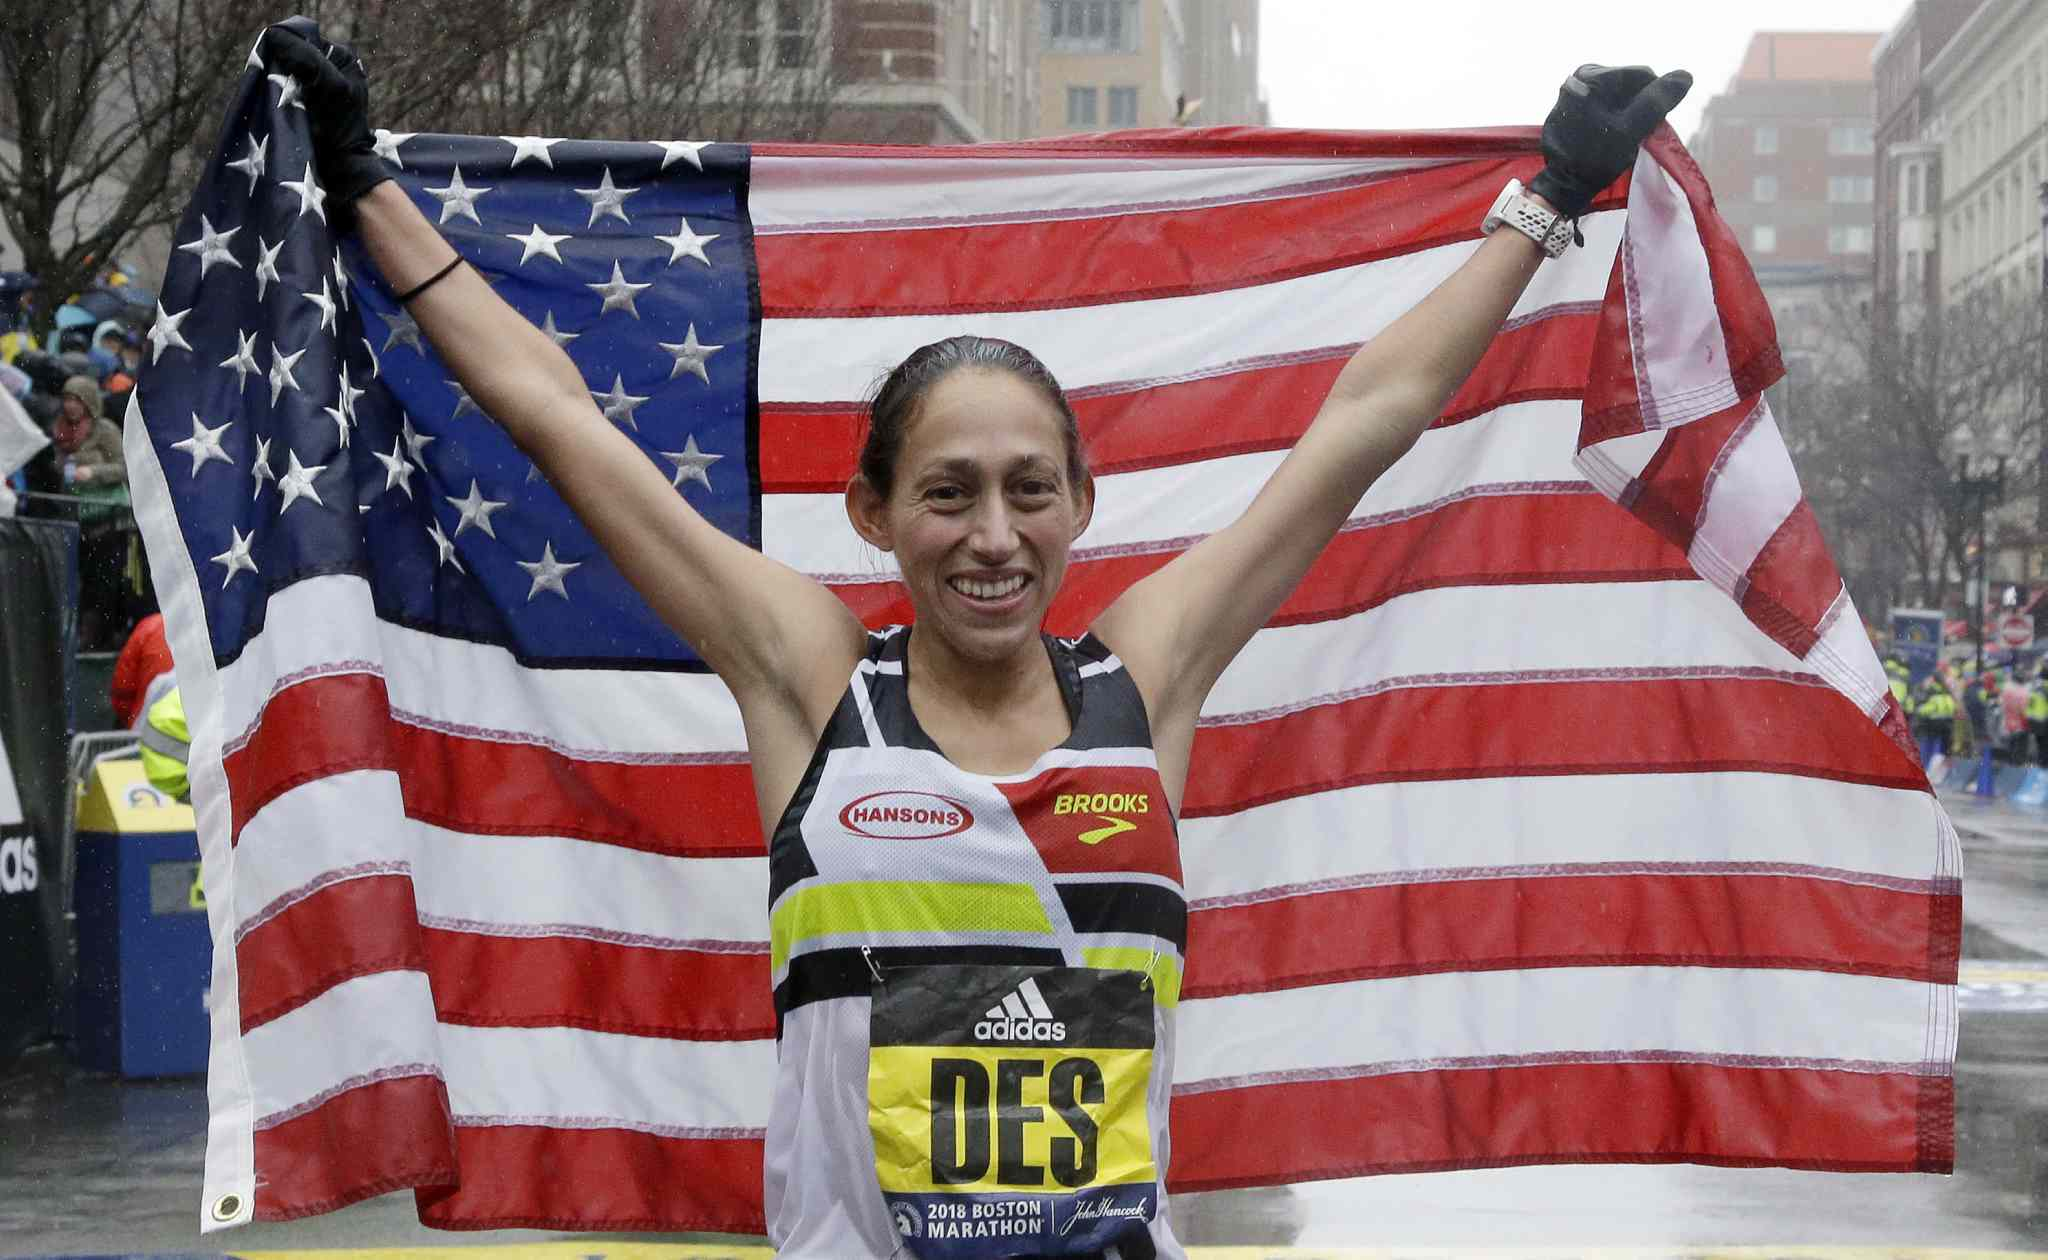 Desiree Linden, of Washington, Mich., celebrates after winning the women's division of the 122nd Boston Marathon on Monday, April 16, 2018, in Boston. She is the first American woman to win the race since 1985. (AP Photo/Elise Amendola)